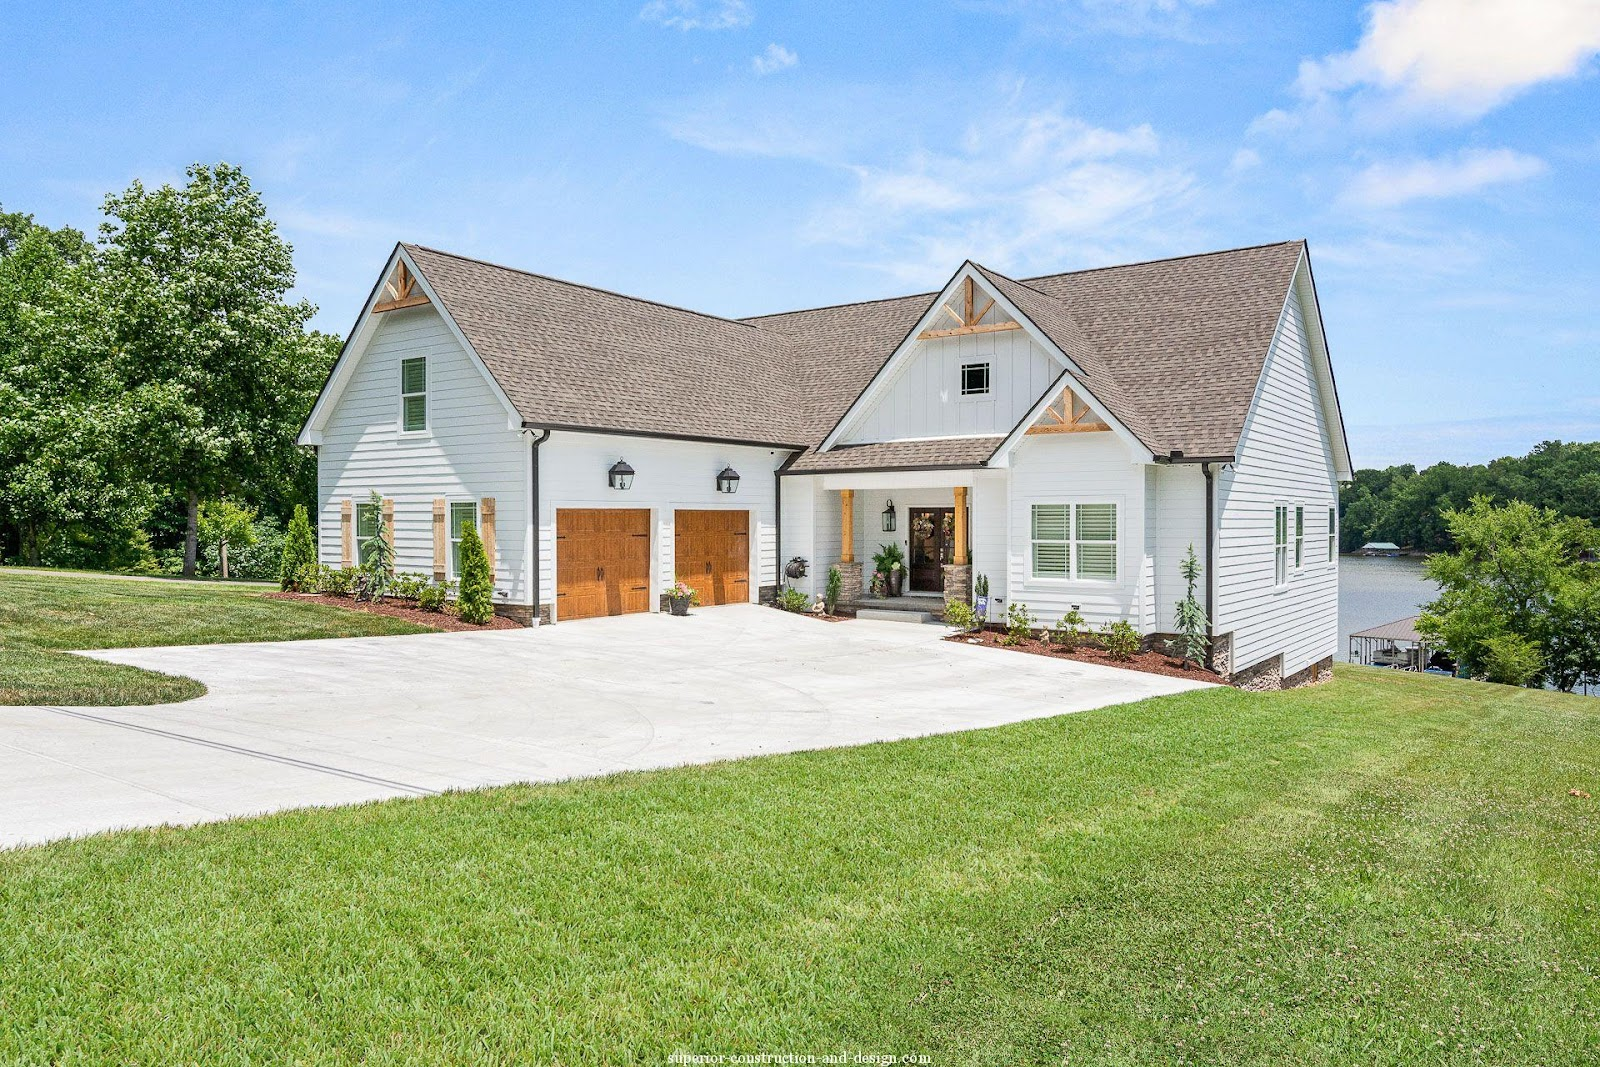 renovating a traditional design house in mt juliet, tn